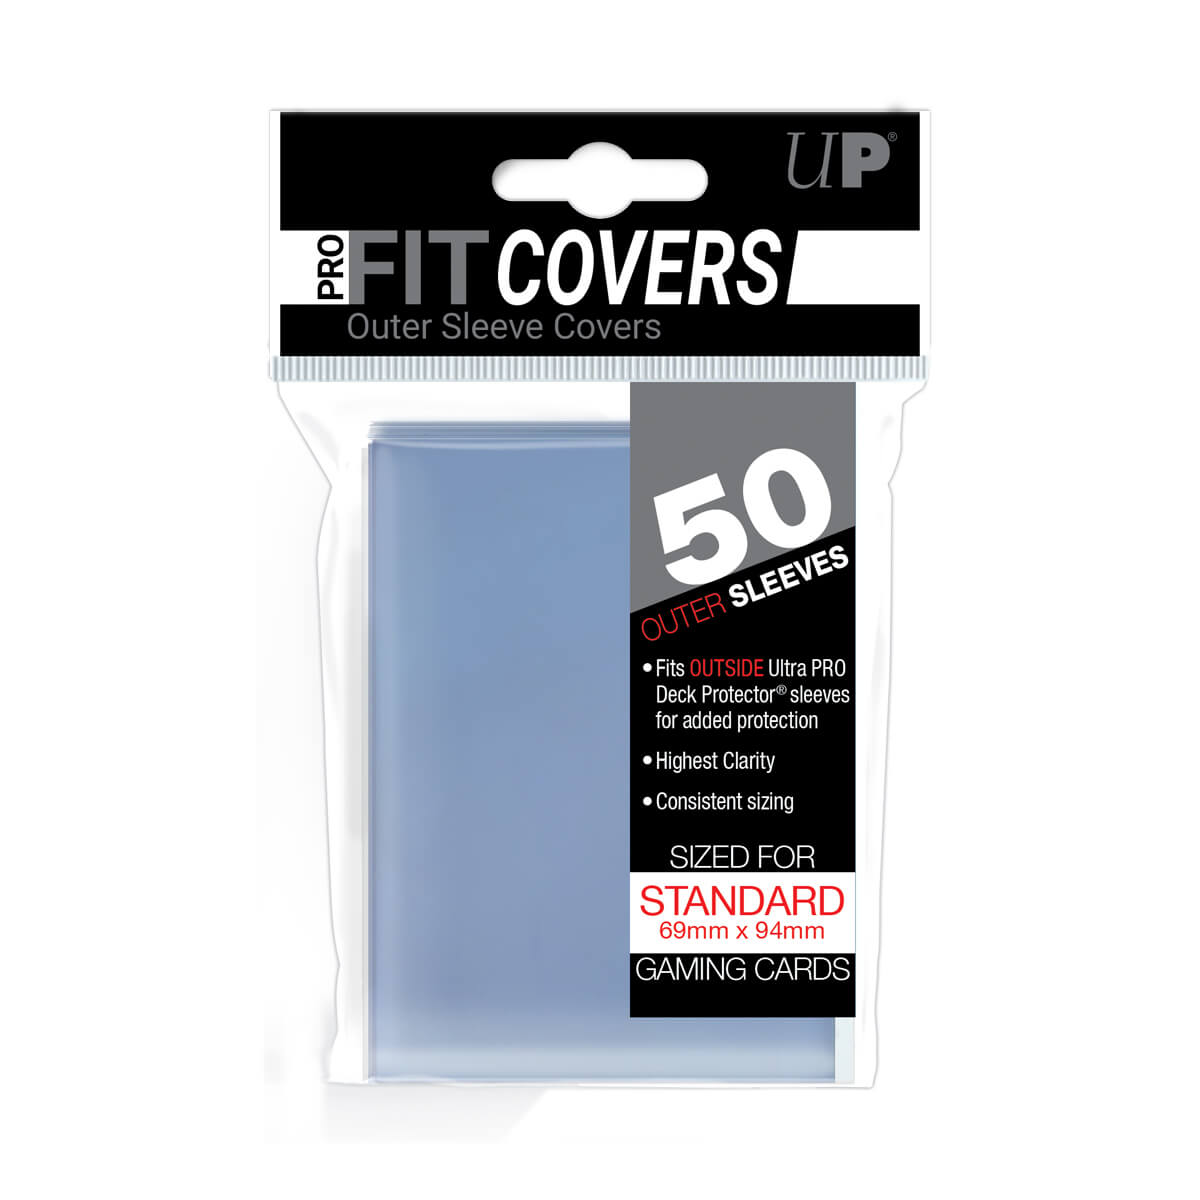 Ultra Pro Deck Protector Sleeve Covers Regular Size (50Ct)